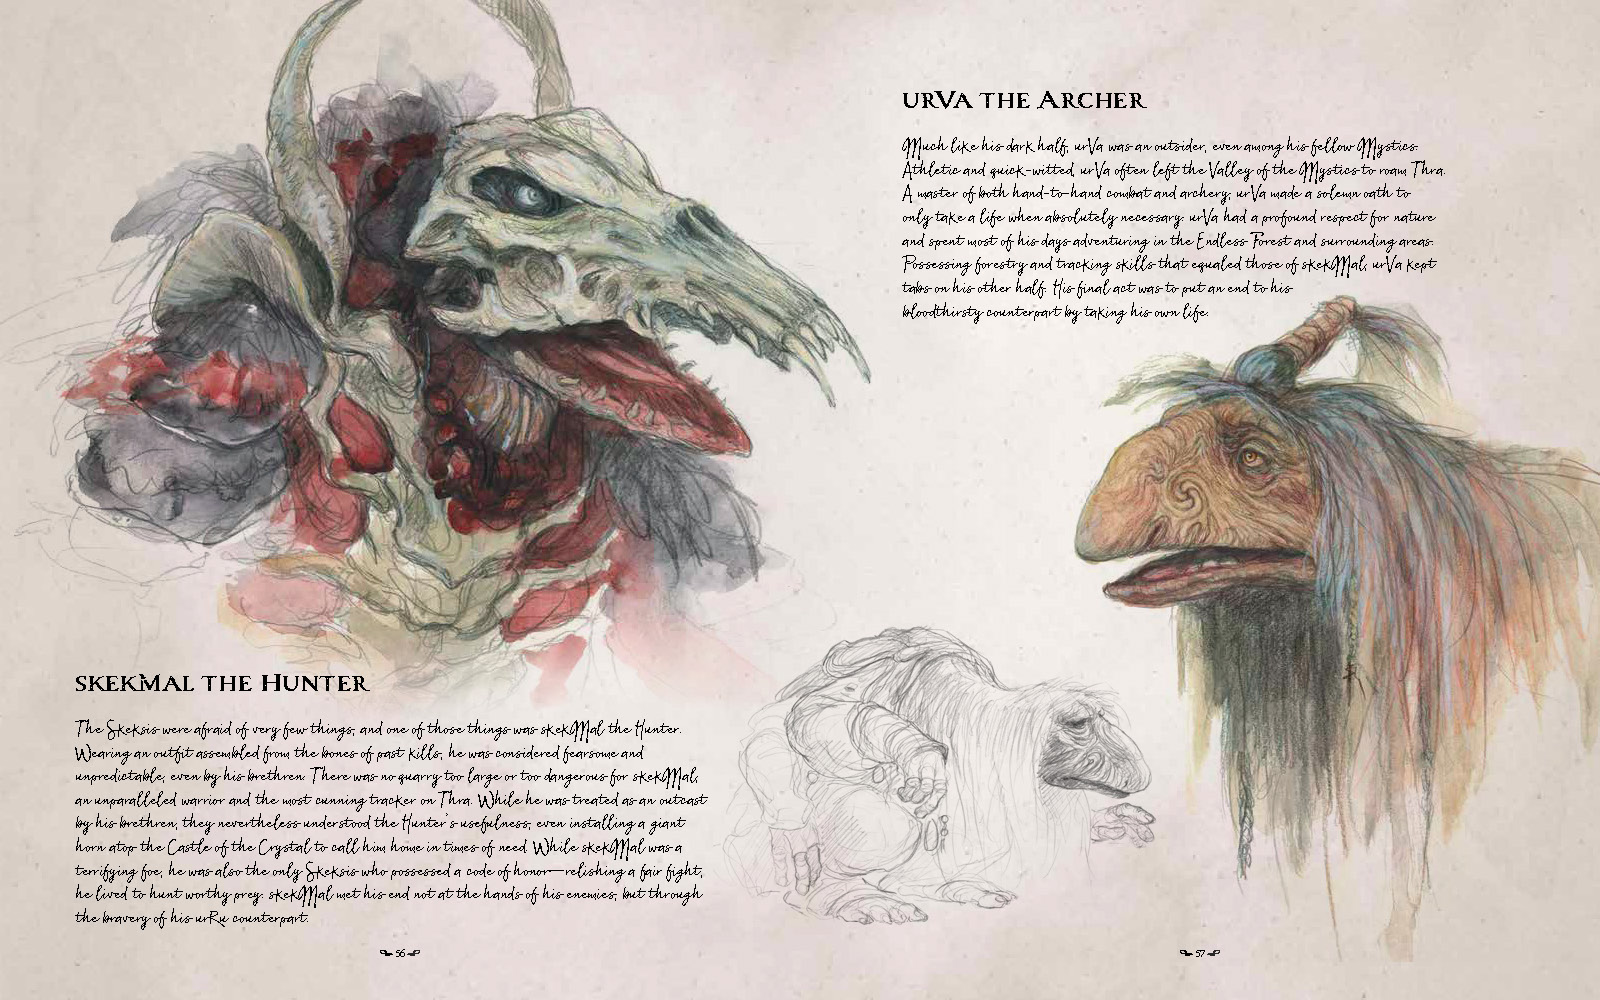 skekMal and urVa illustration from Dark Crystal Bestiary